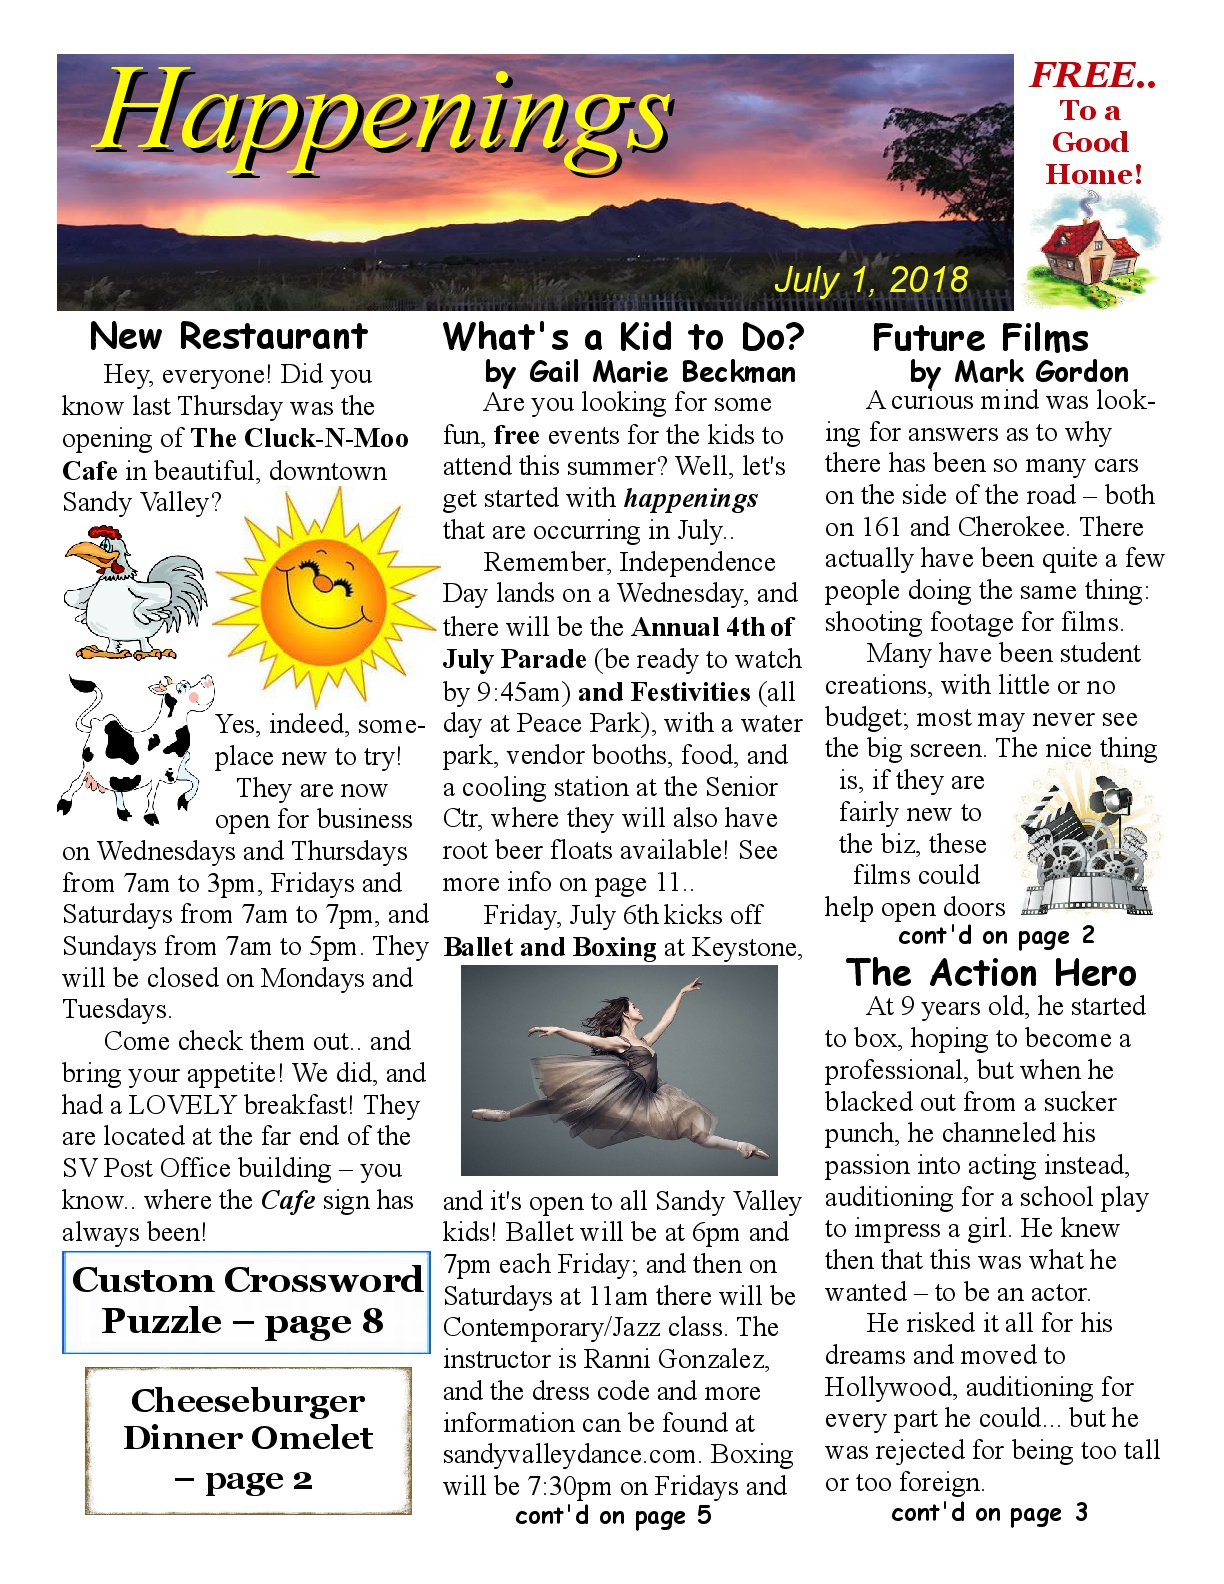 Sandy Valley Happenings Listing